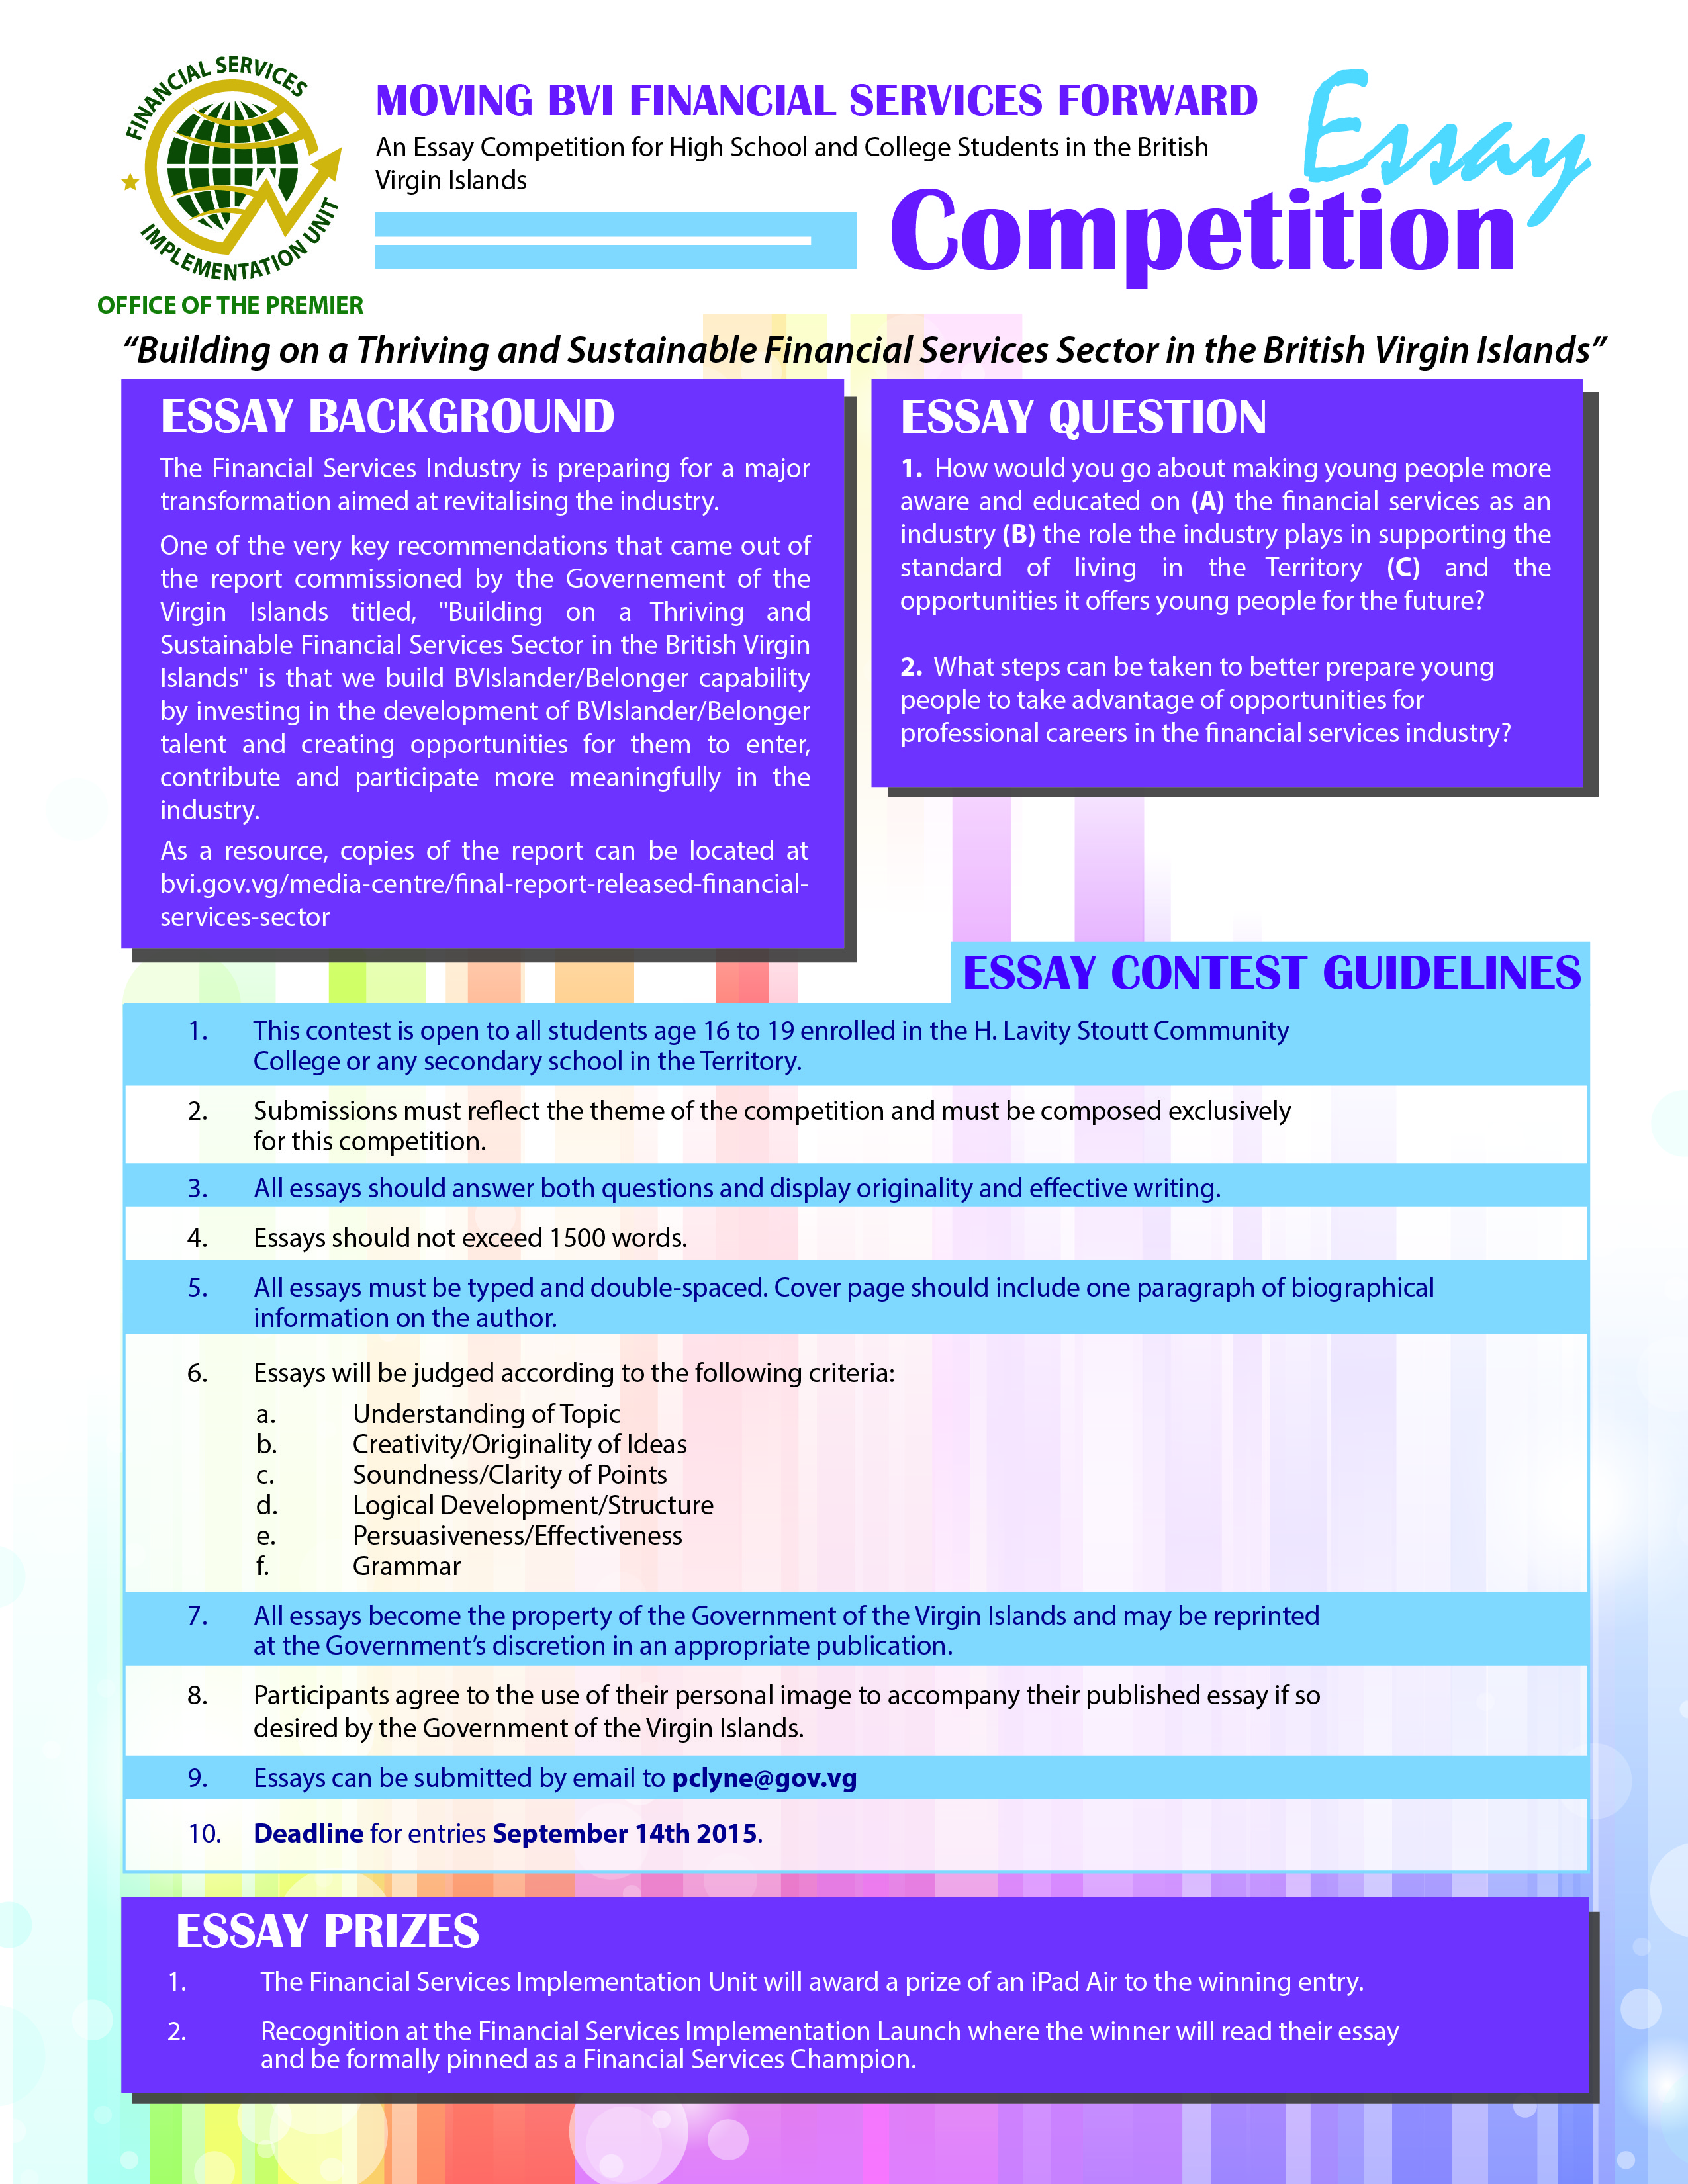 003 Essay Contests For High School Students Example Essays On Competition Oxbridge College 344  Financial Services Targets Staggering 2017Full